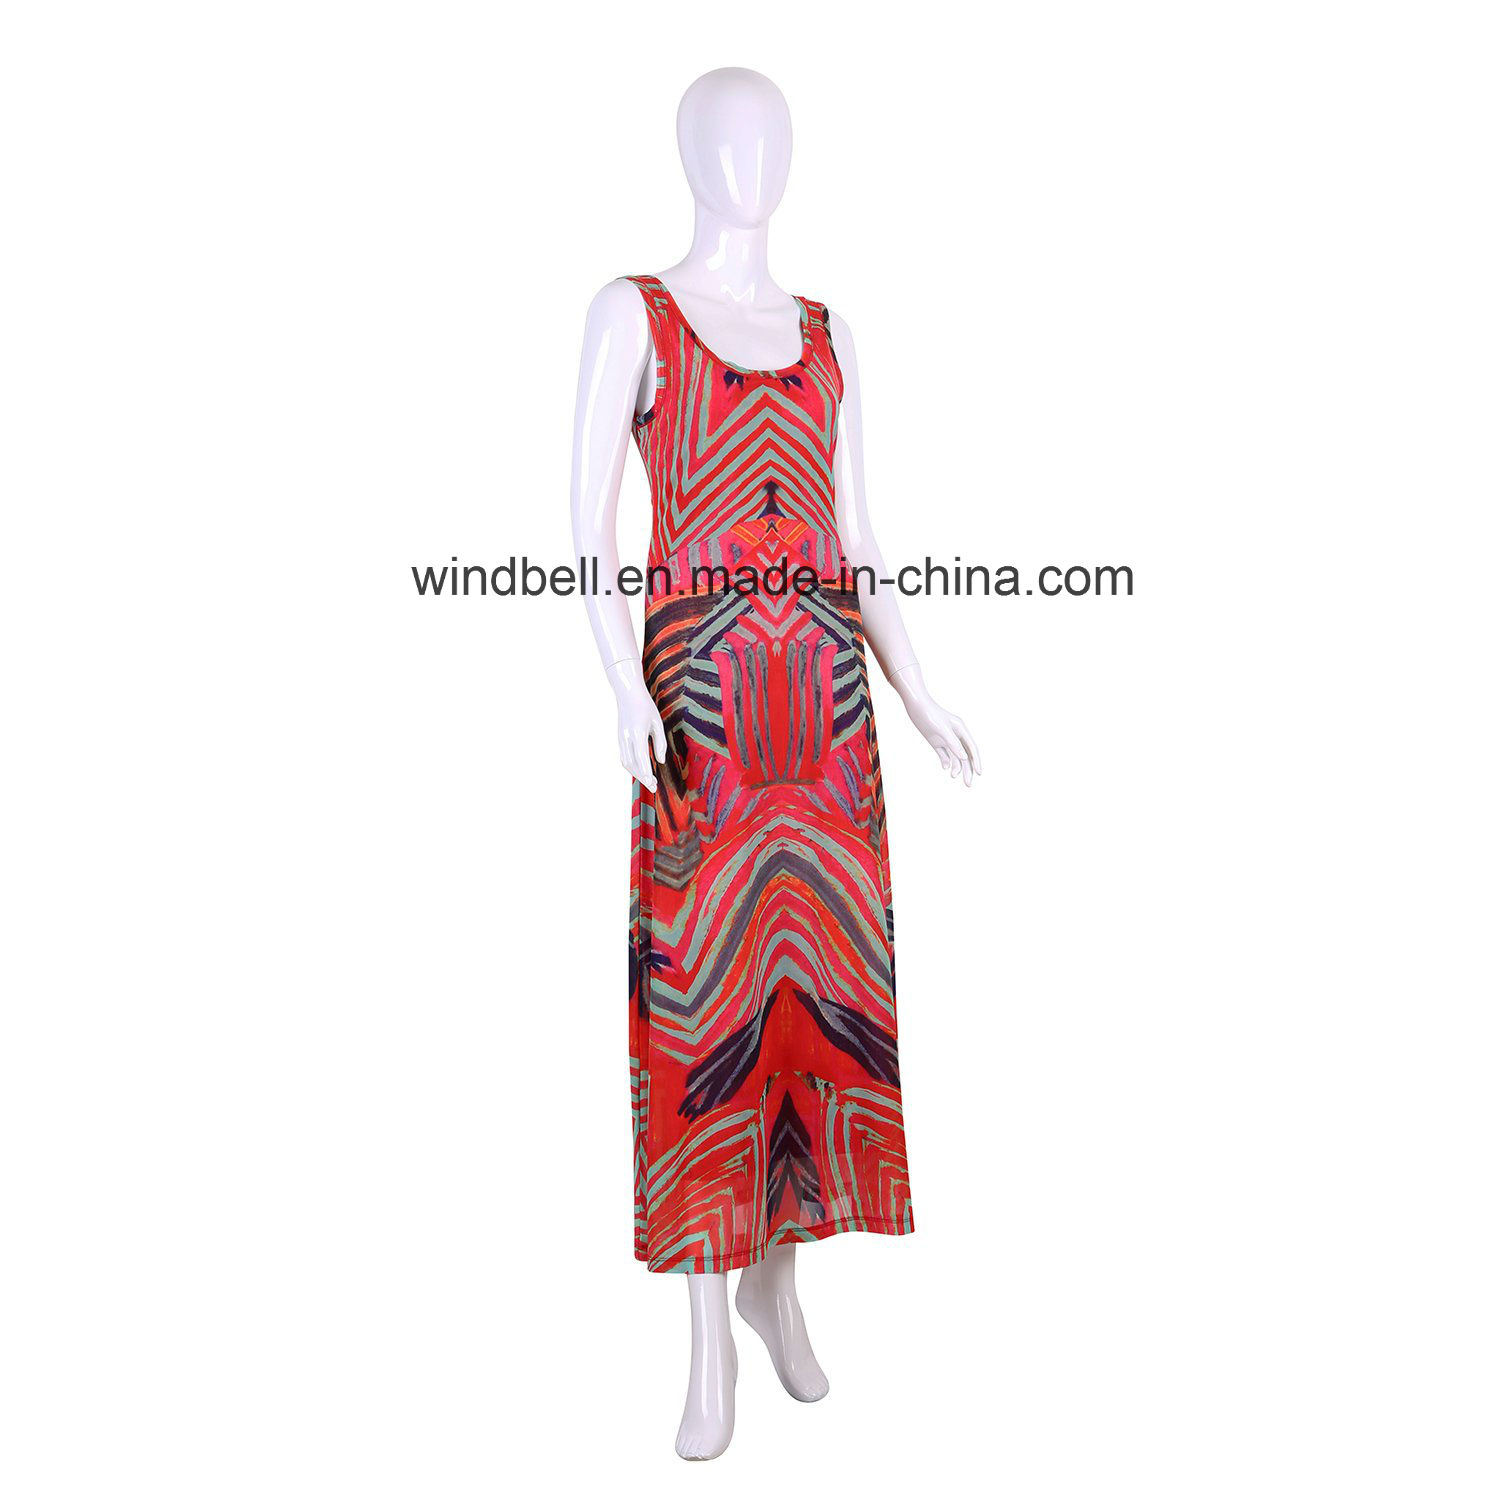 Womens Slim Dress with Digital Print